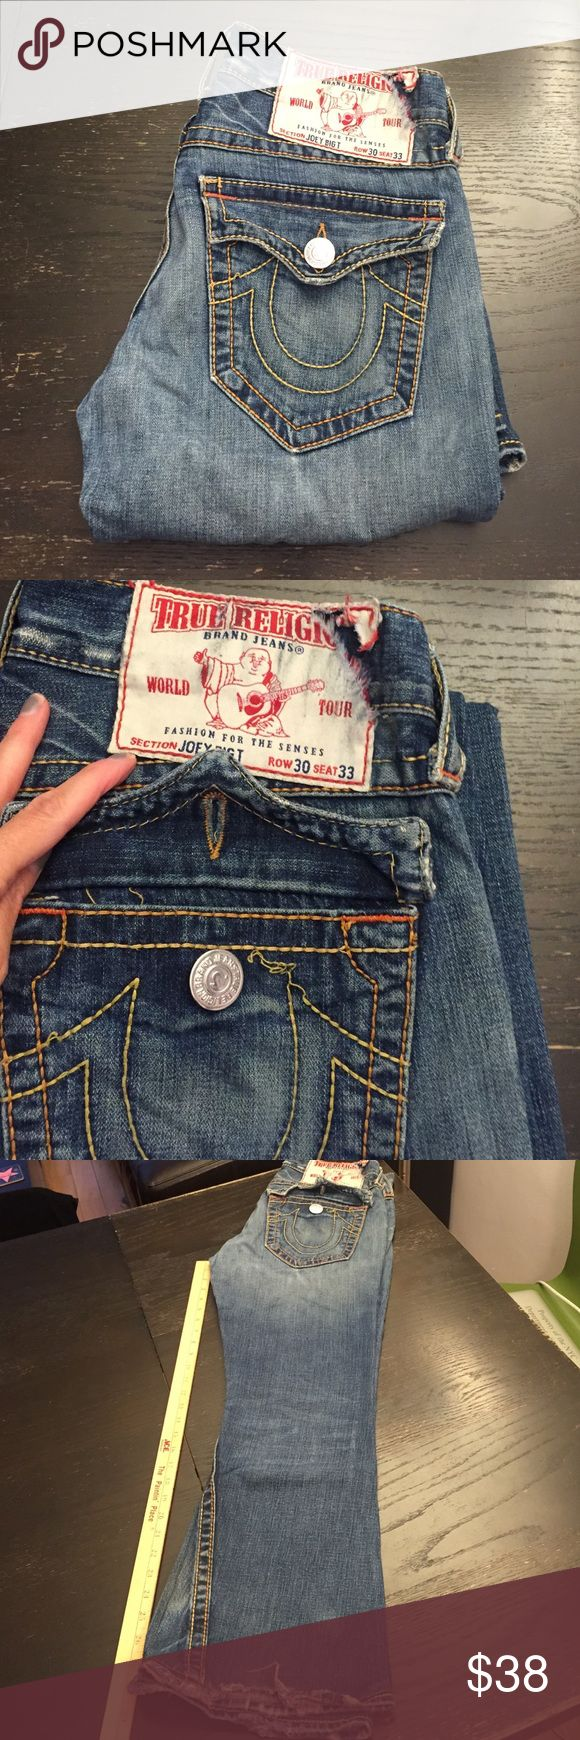 "True Religion Jeans Joey Big T Size 30 Men's. Cigs professionally reattached to 29"" inseam. Slight damaged as shown on pics 2 and 4. Purchased at atrium NYC True Religion Jeans Flare & Wide Leg"